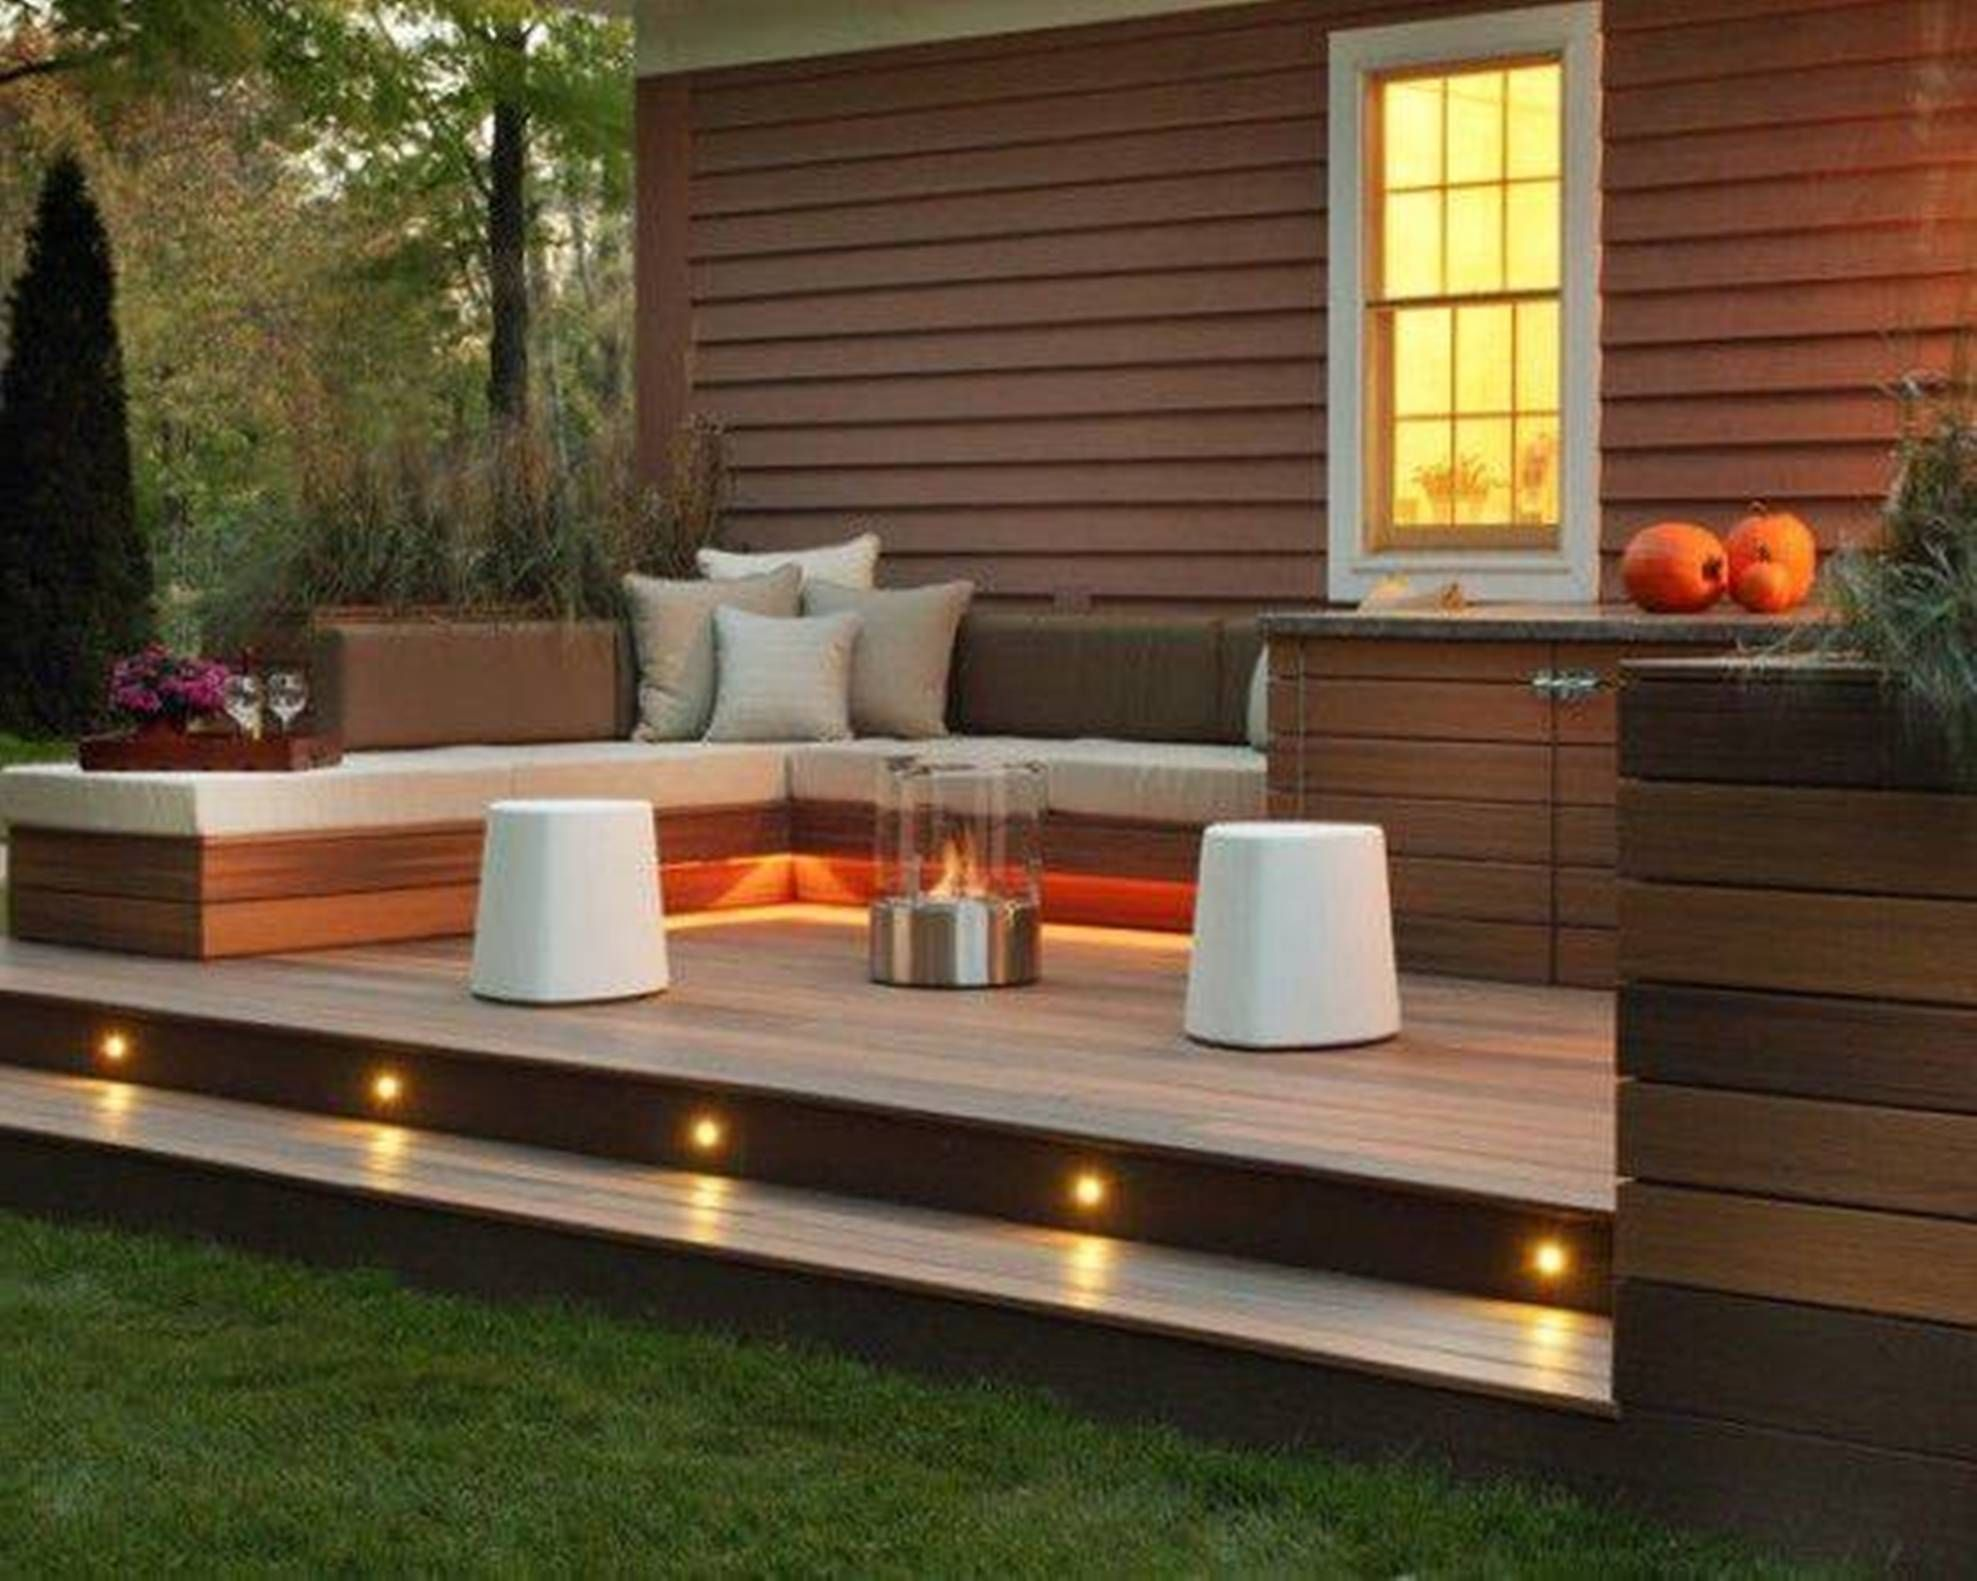 Landscaping and outdoor building great small backyard for Deck designs for small backyards